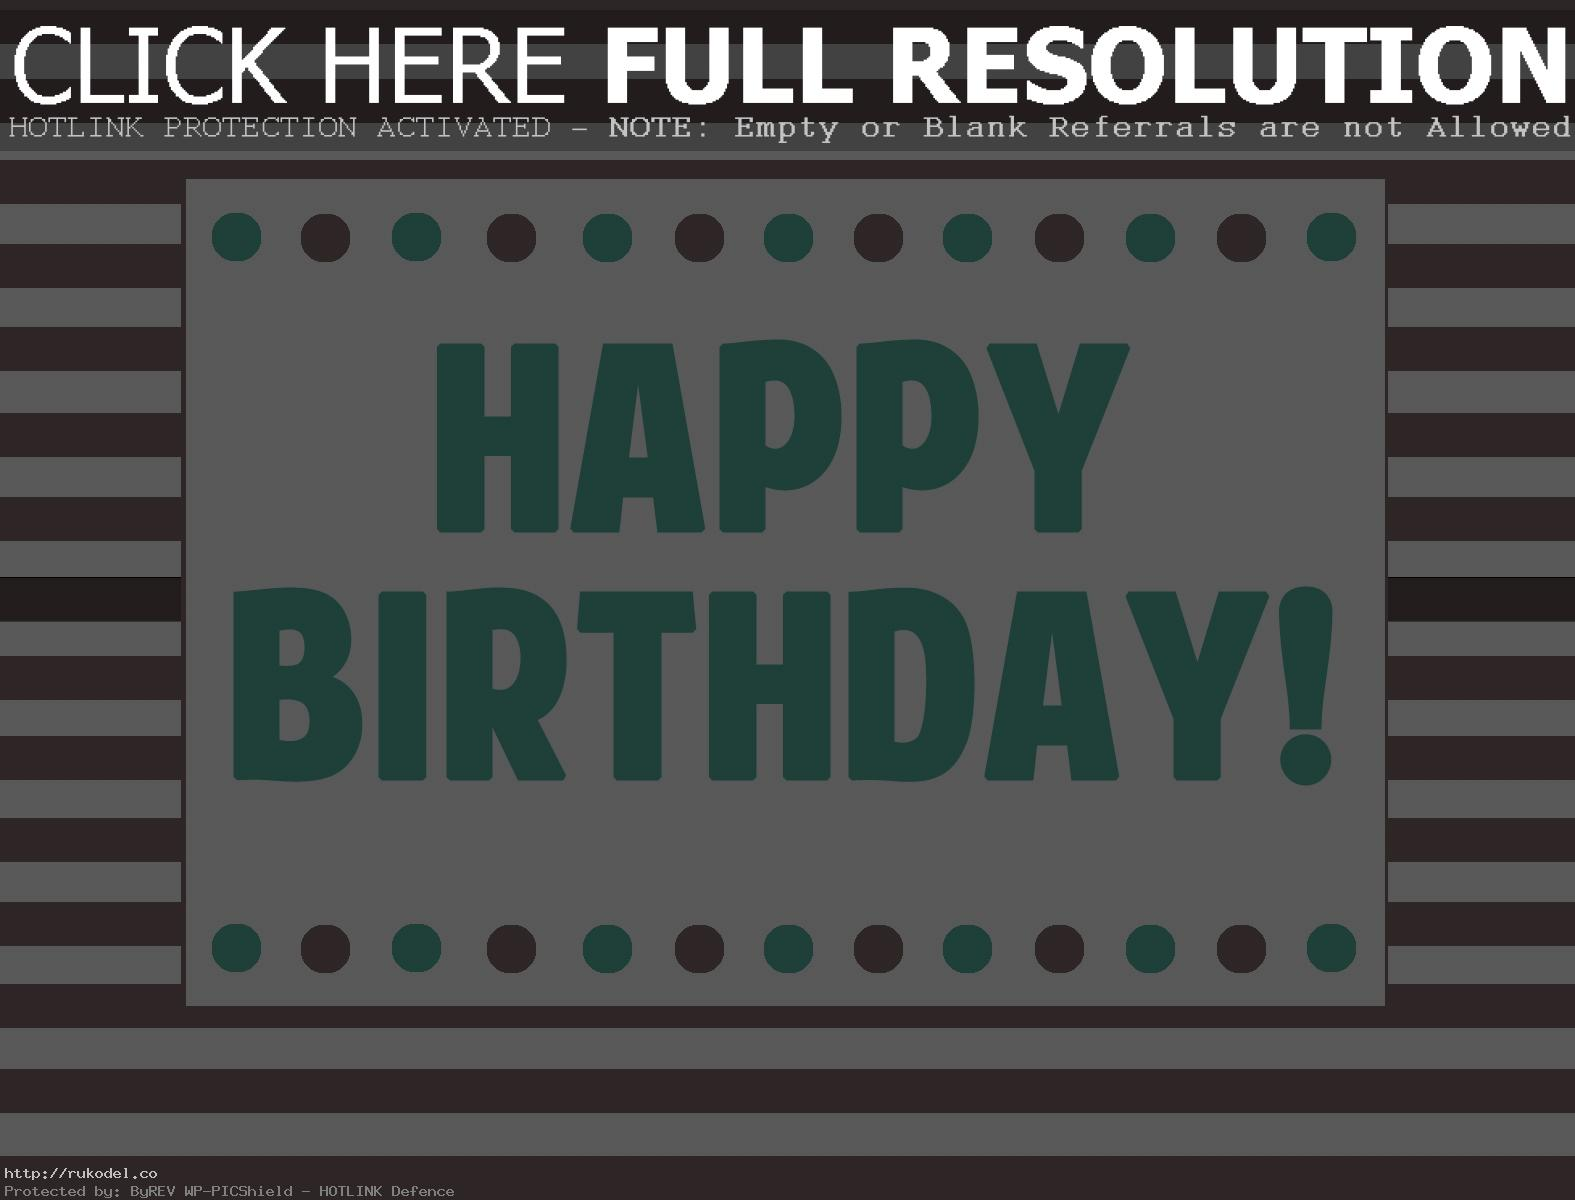 free happy birthday signs to print ; happy-birthday-images-printable-new-sign-clip-art-library-with